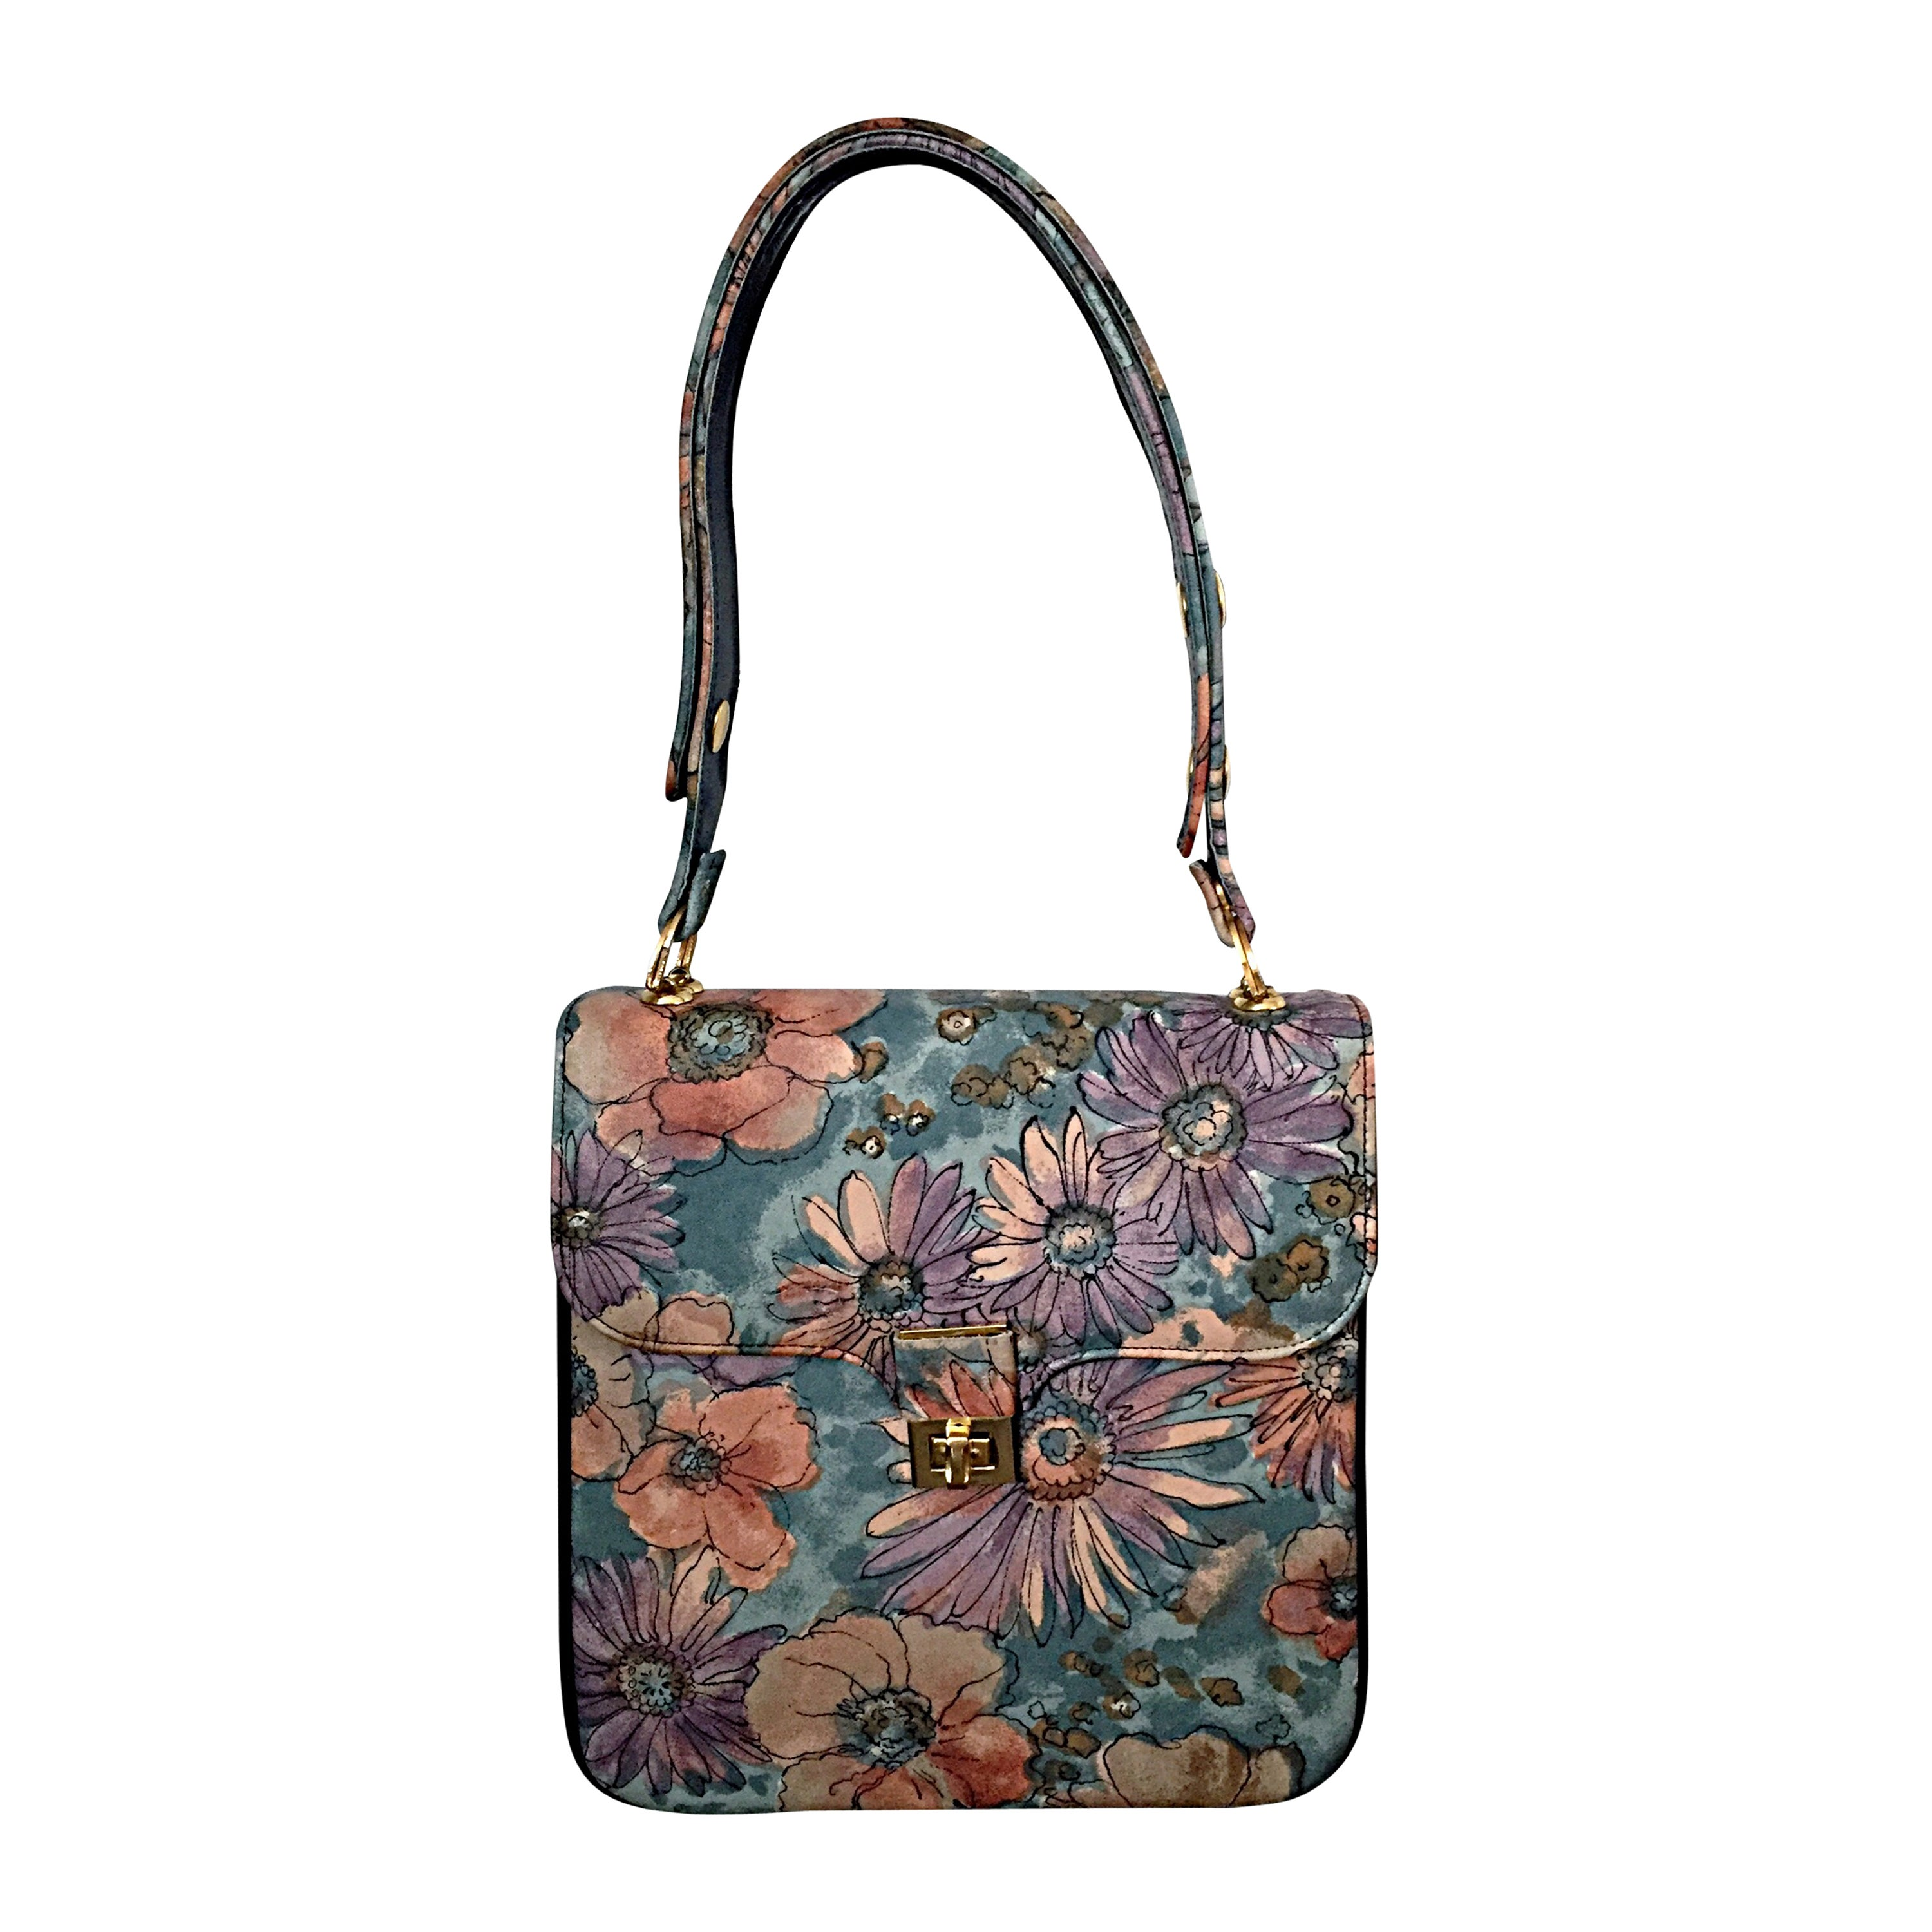 bb268c32edcf Incredible Vintage Bags by Varon Hand Painted Leather Flower Purse Handbag  For Sale at 1stdibs